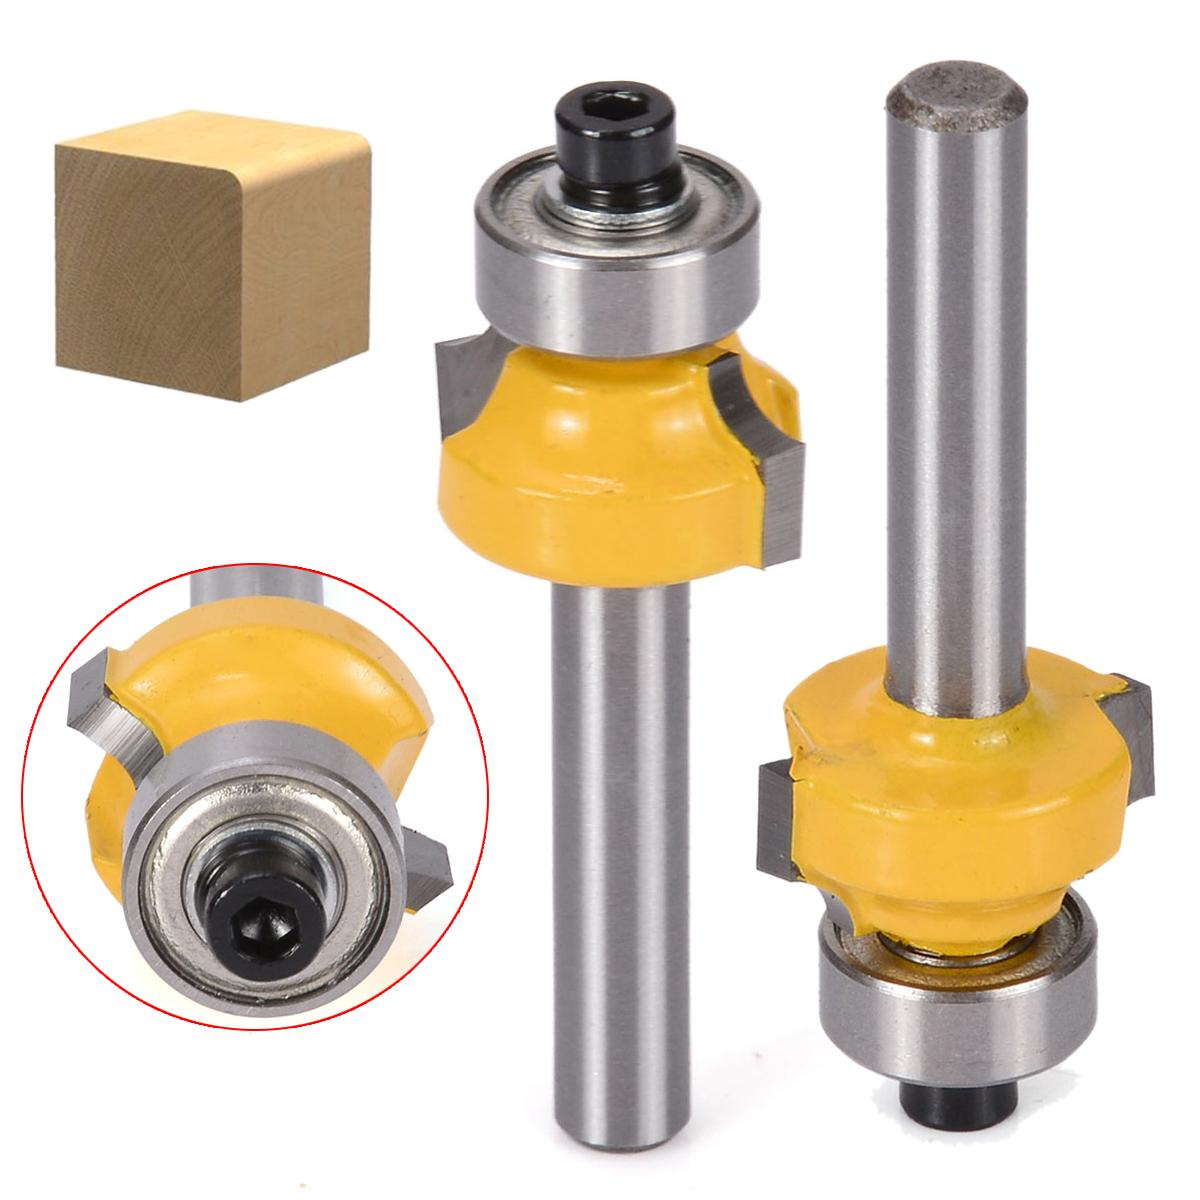 Idh 1/4inch Shank Round Over Edging Router Bit 1/8 Radius Carbide Cutter Woodworking